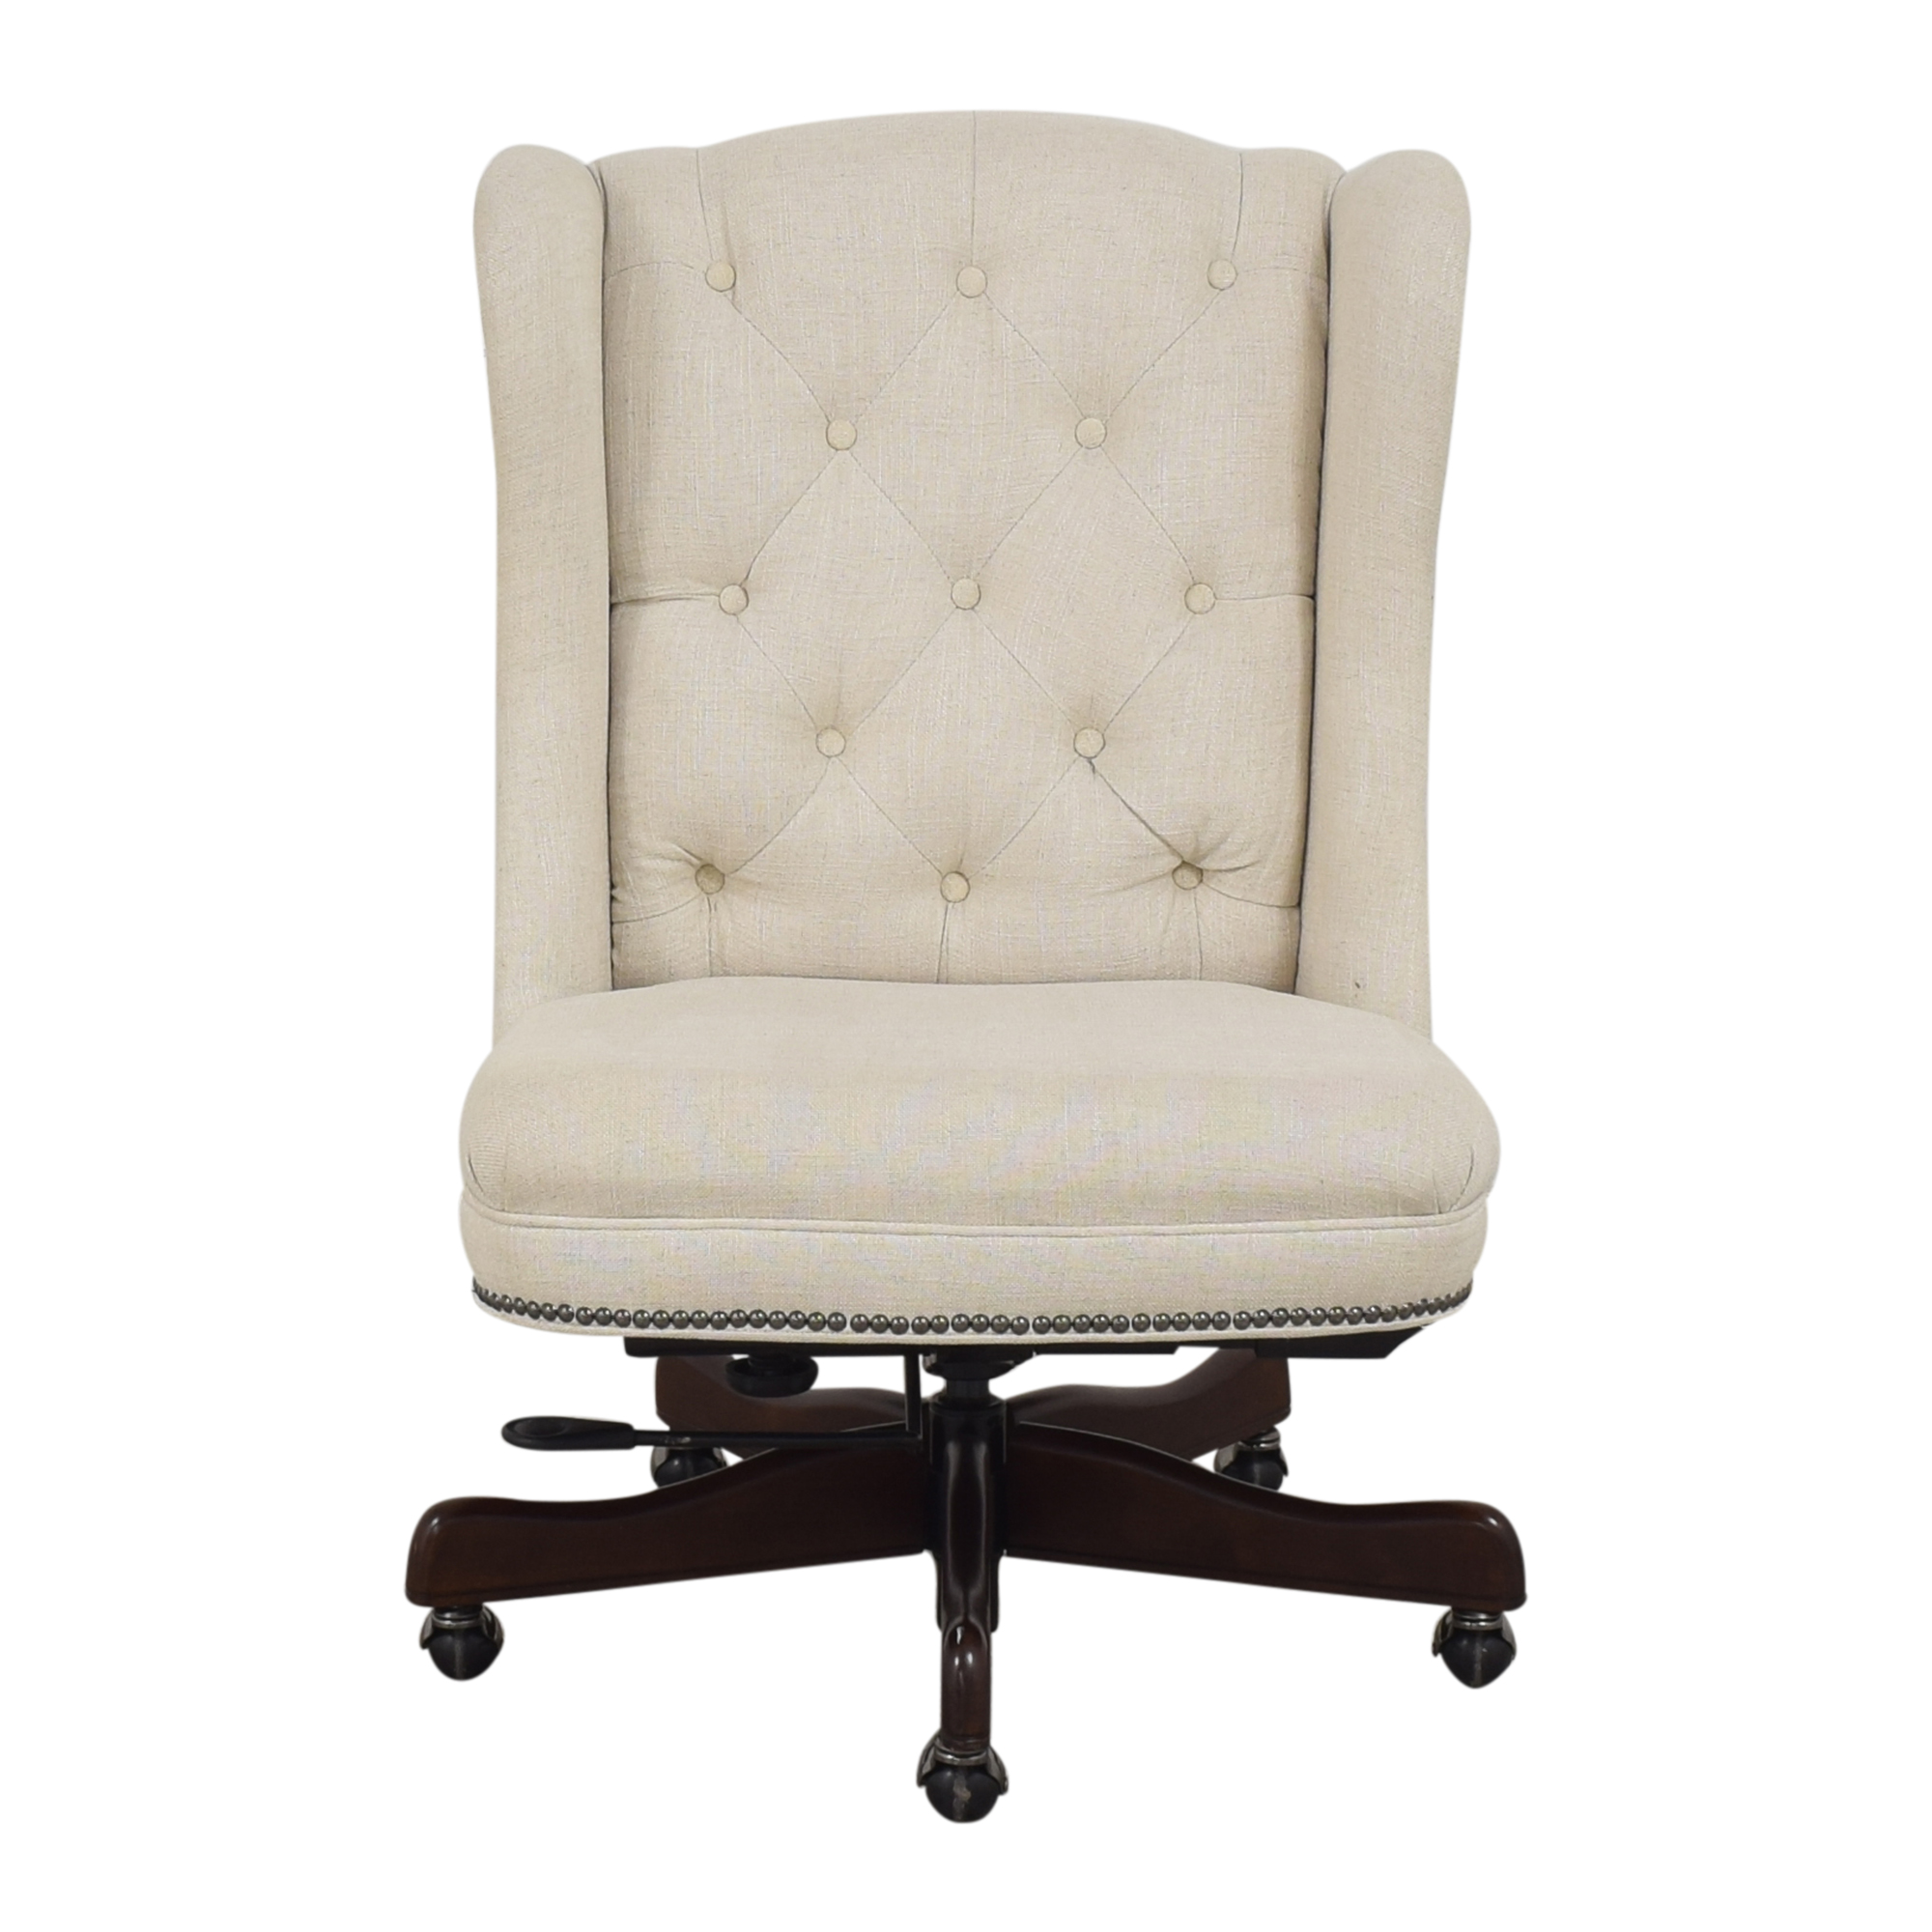 Hooker Furniture Hooker Andover Executive Office Chair pa